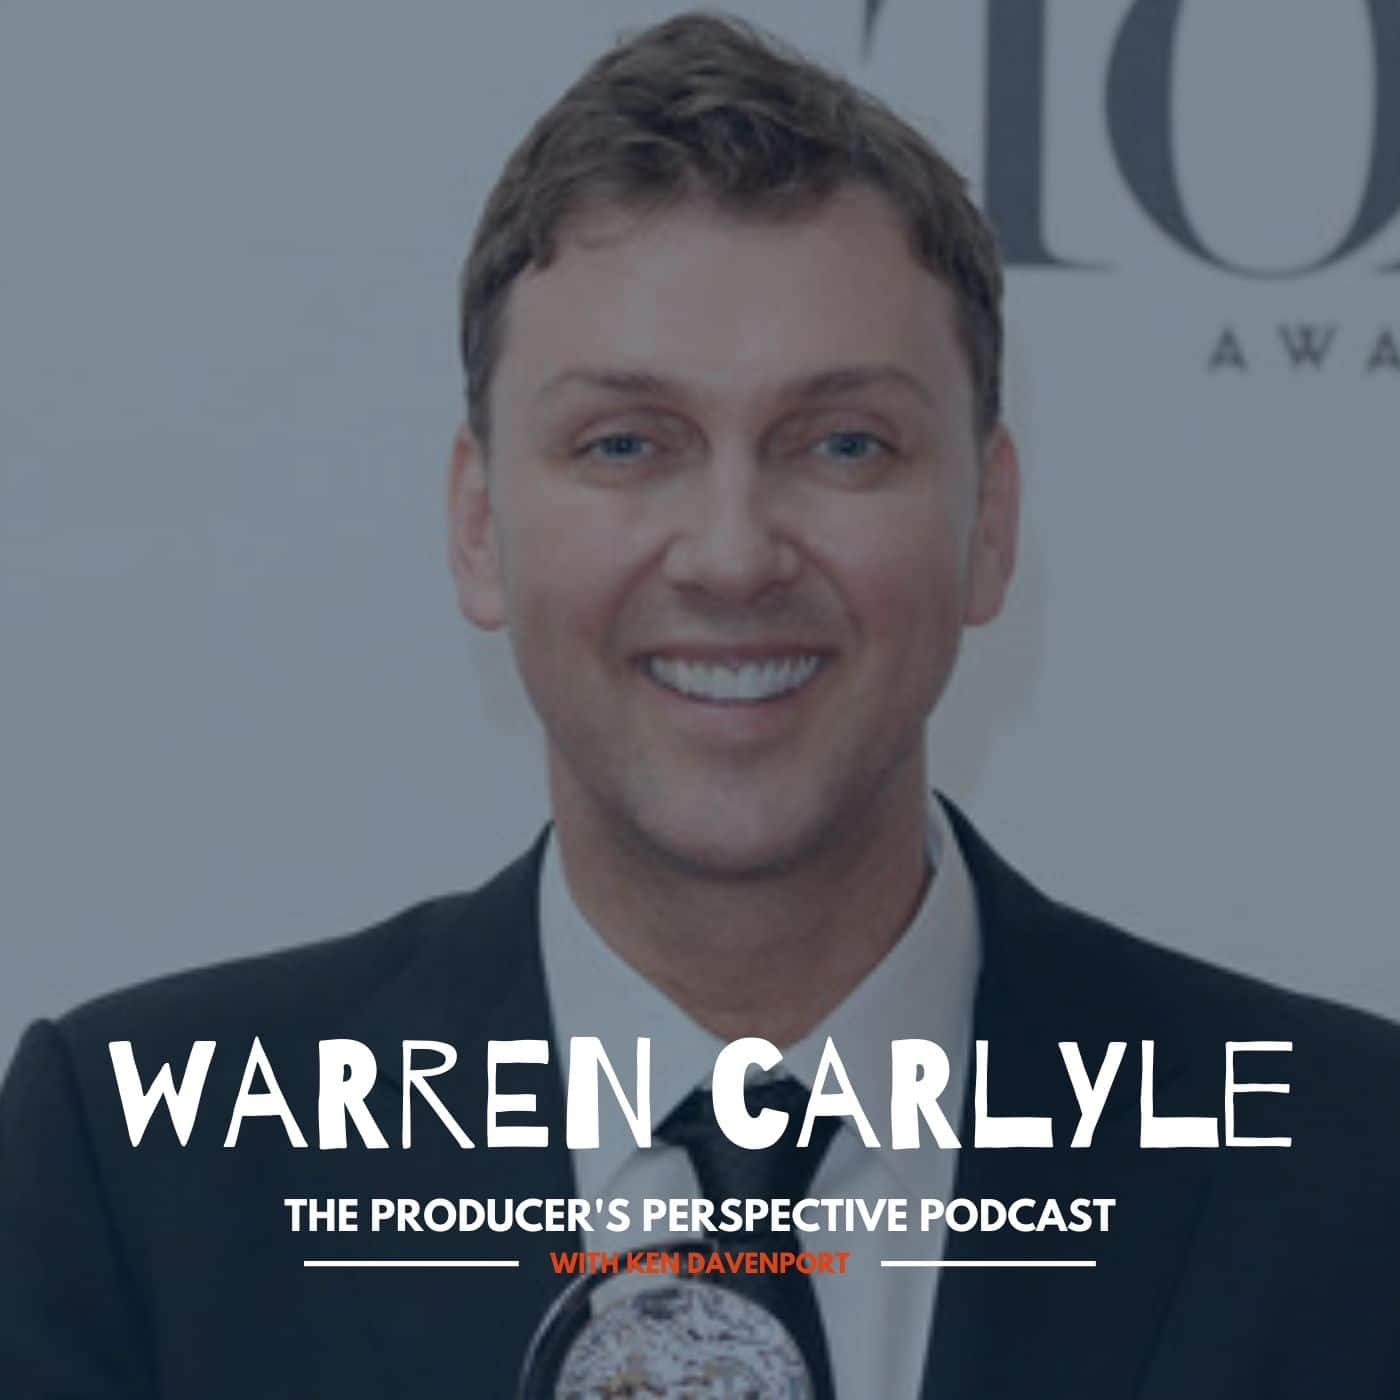 Ken Davenport's The Producer's Perspective Podcast Episode 191 - Warren Carlyle